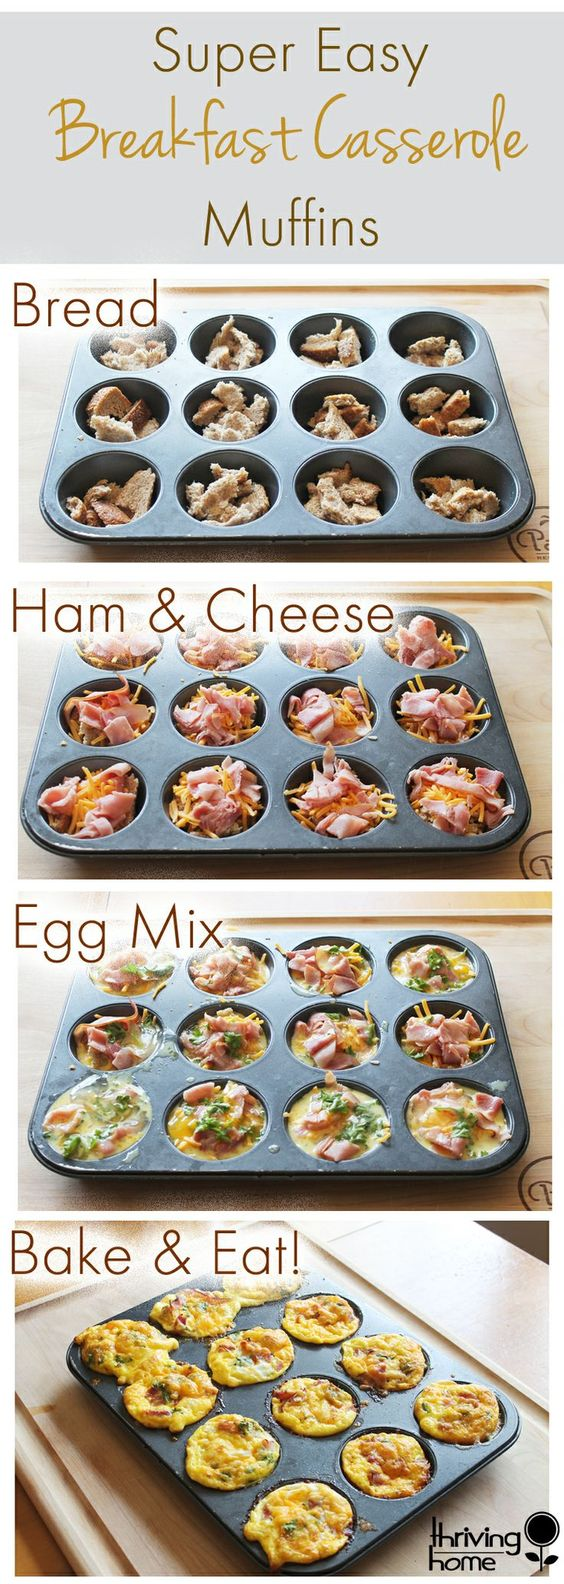 Easy Breakfast Casserole Muffins #easybreakfast #breakfastrecipes #casserole #muffins #easyrecipes